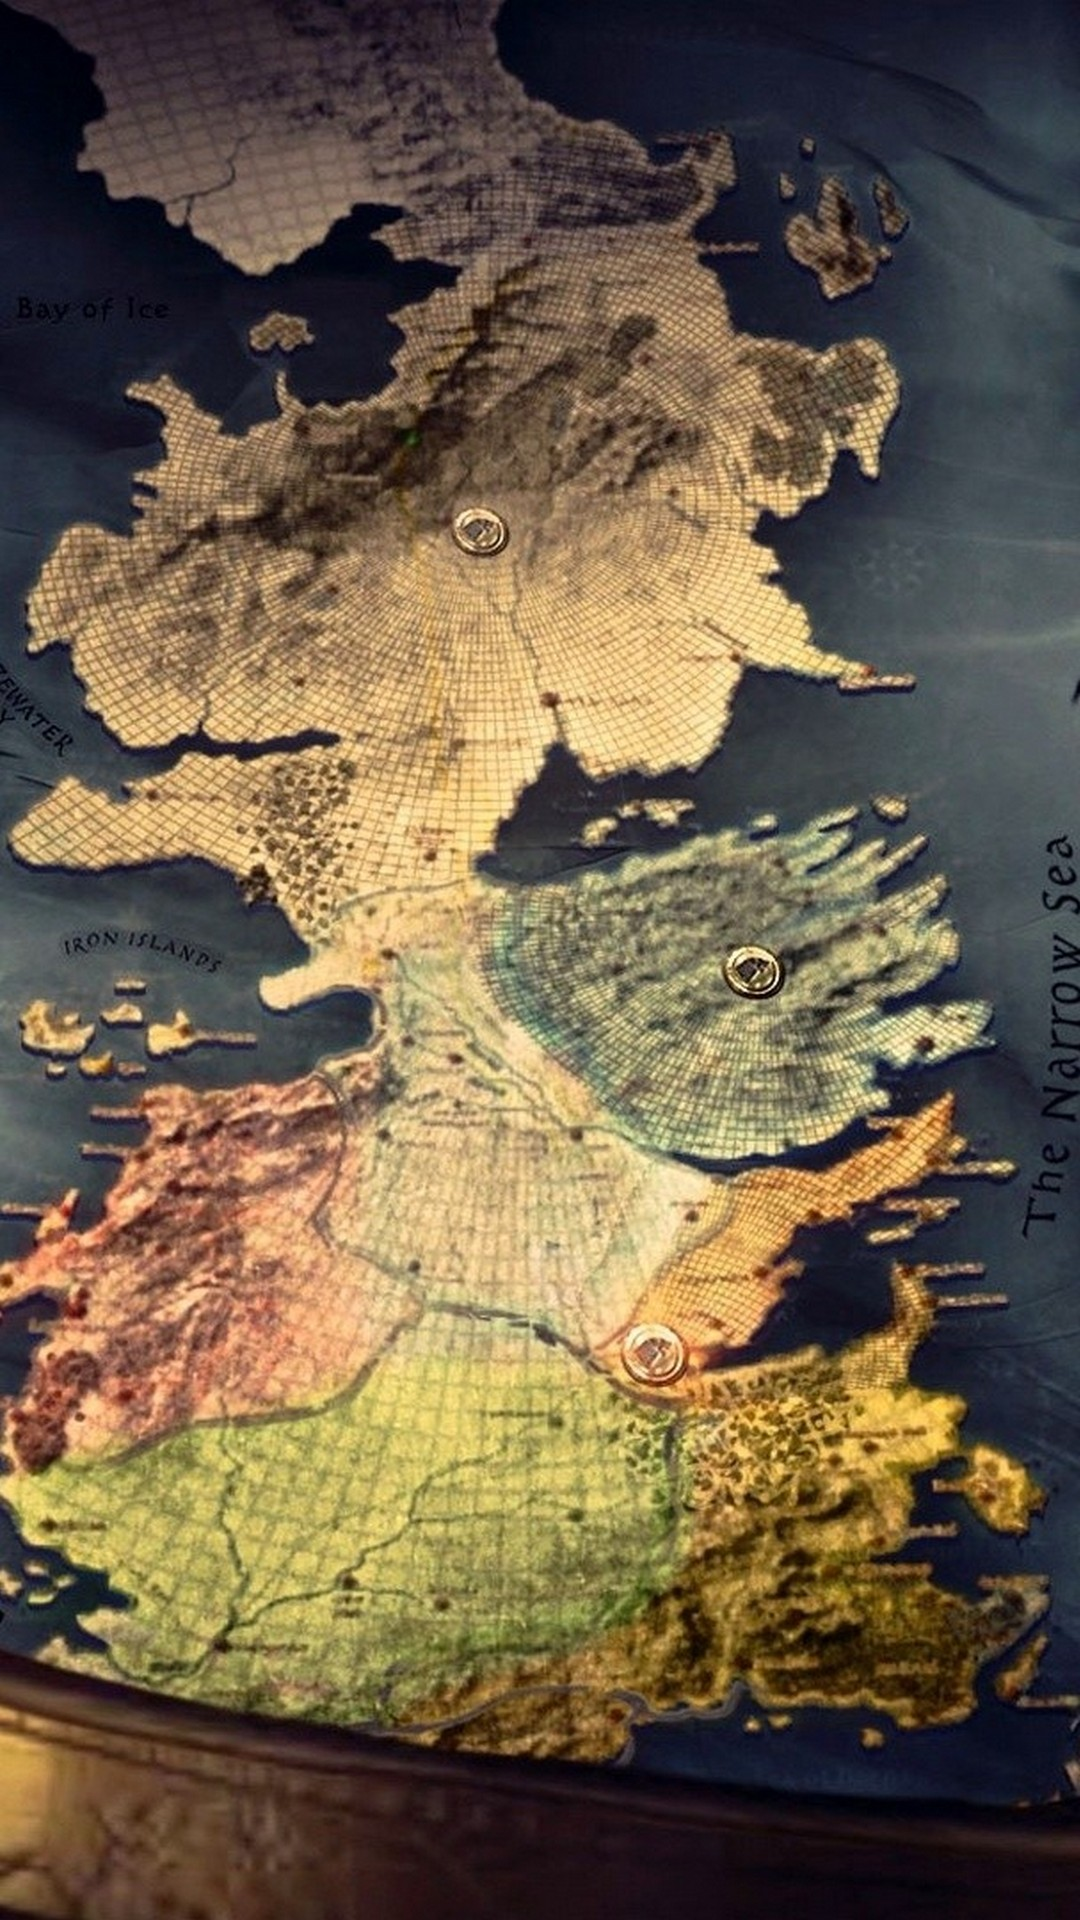 Game Of Thrones Map Iphone Wallpaper With High-resolution - Game Of Thrones Map Phone - HD Wallpaper